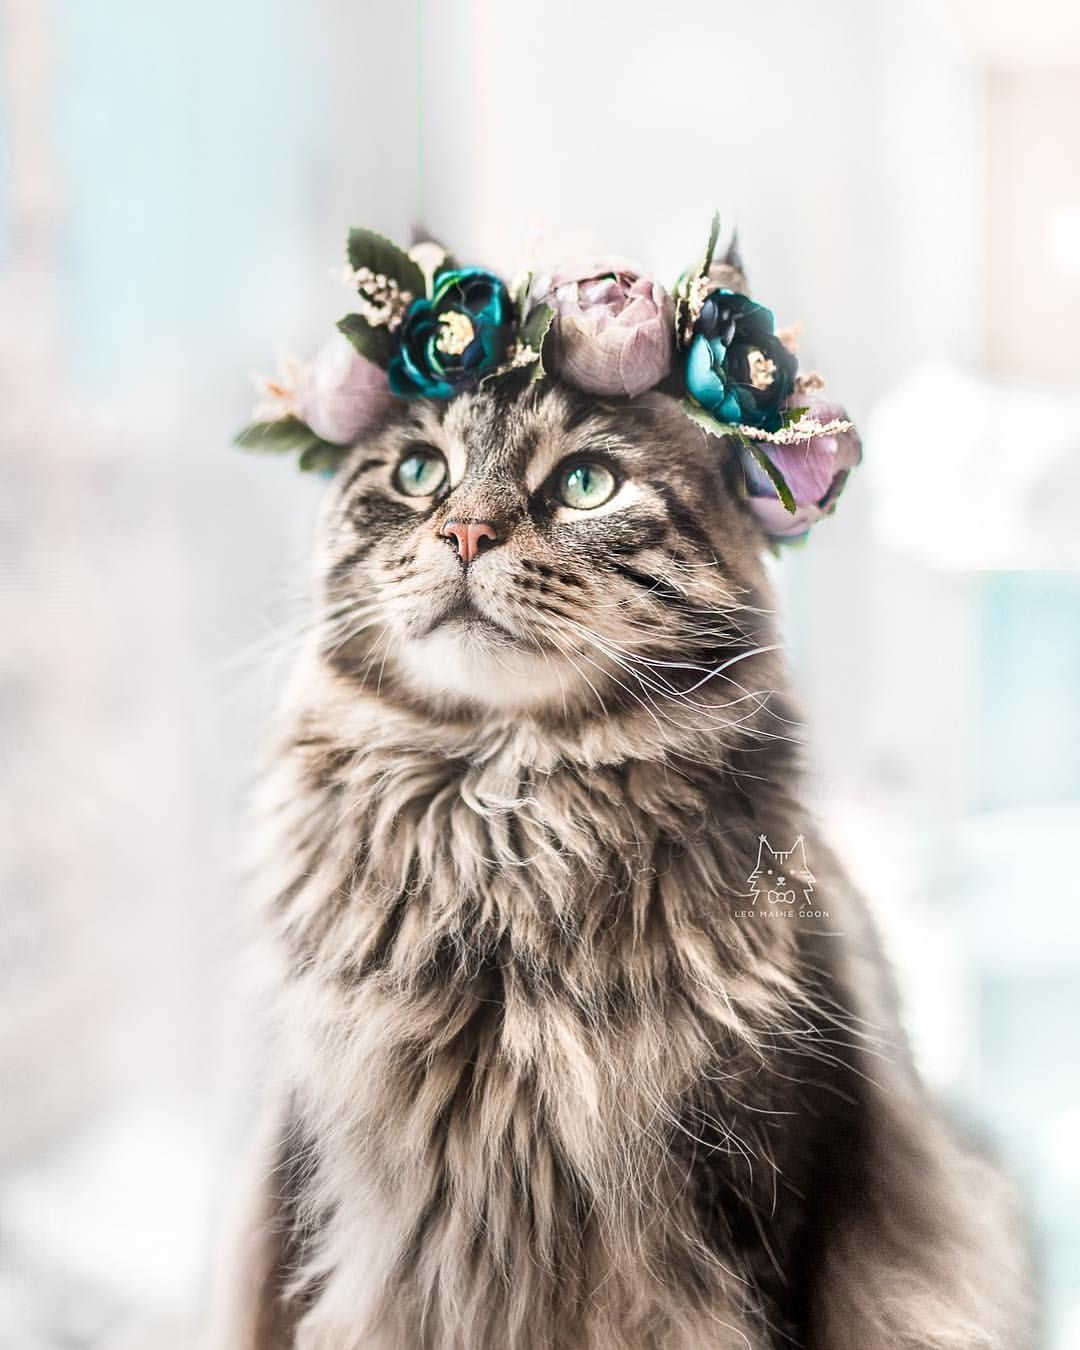 cat clothes cat clothes for cats cat accessories cat collar cat supplies cat lover gifts pet flower crown Maroon Cat Flower Crown